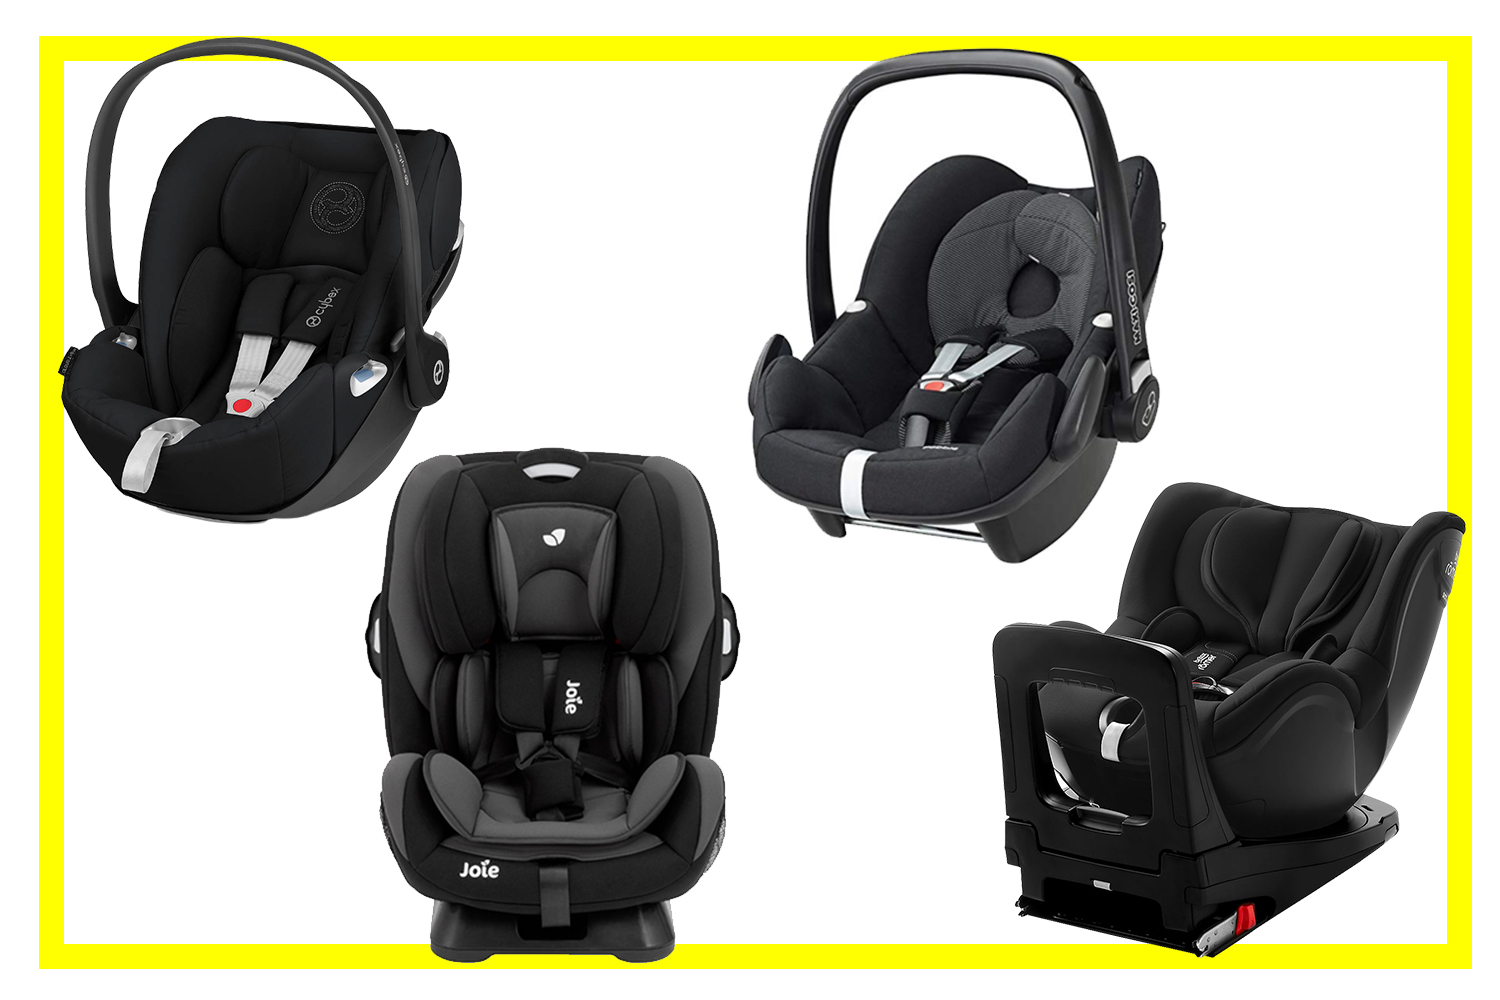 Joie Isofix Base Uk Best Baby Car Seats 2019 The Sun Uk